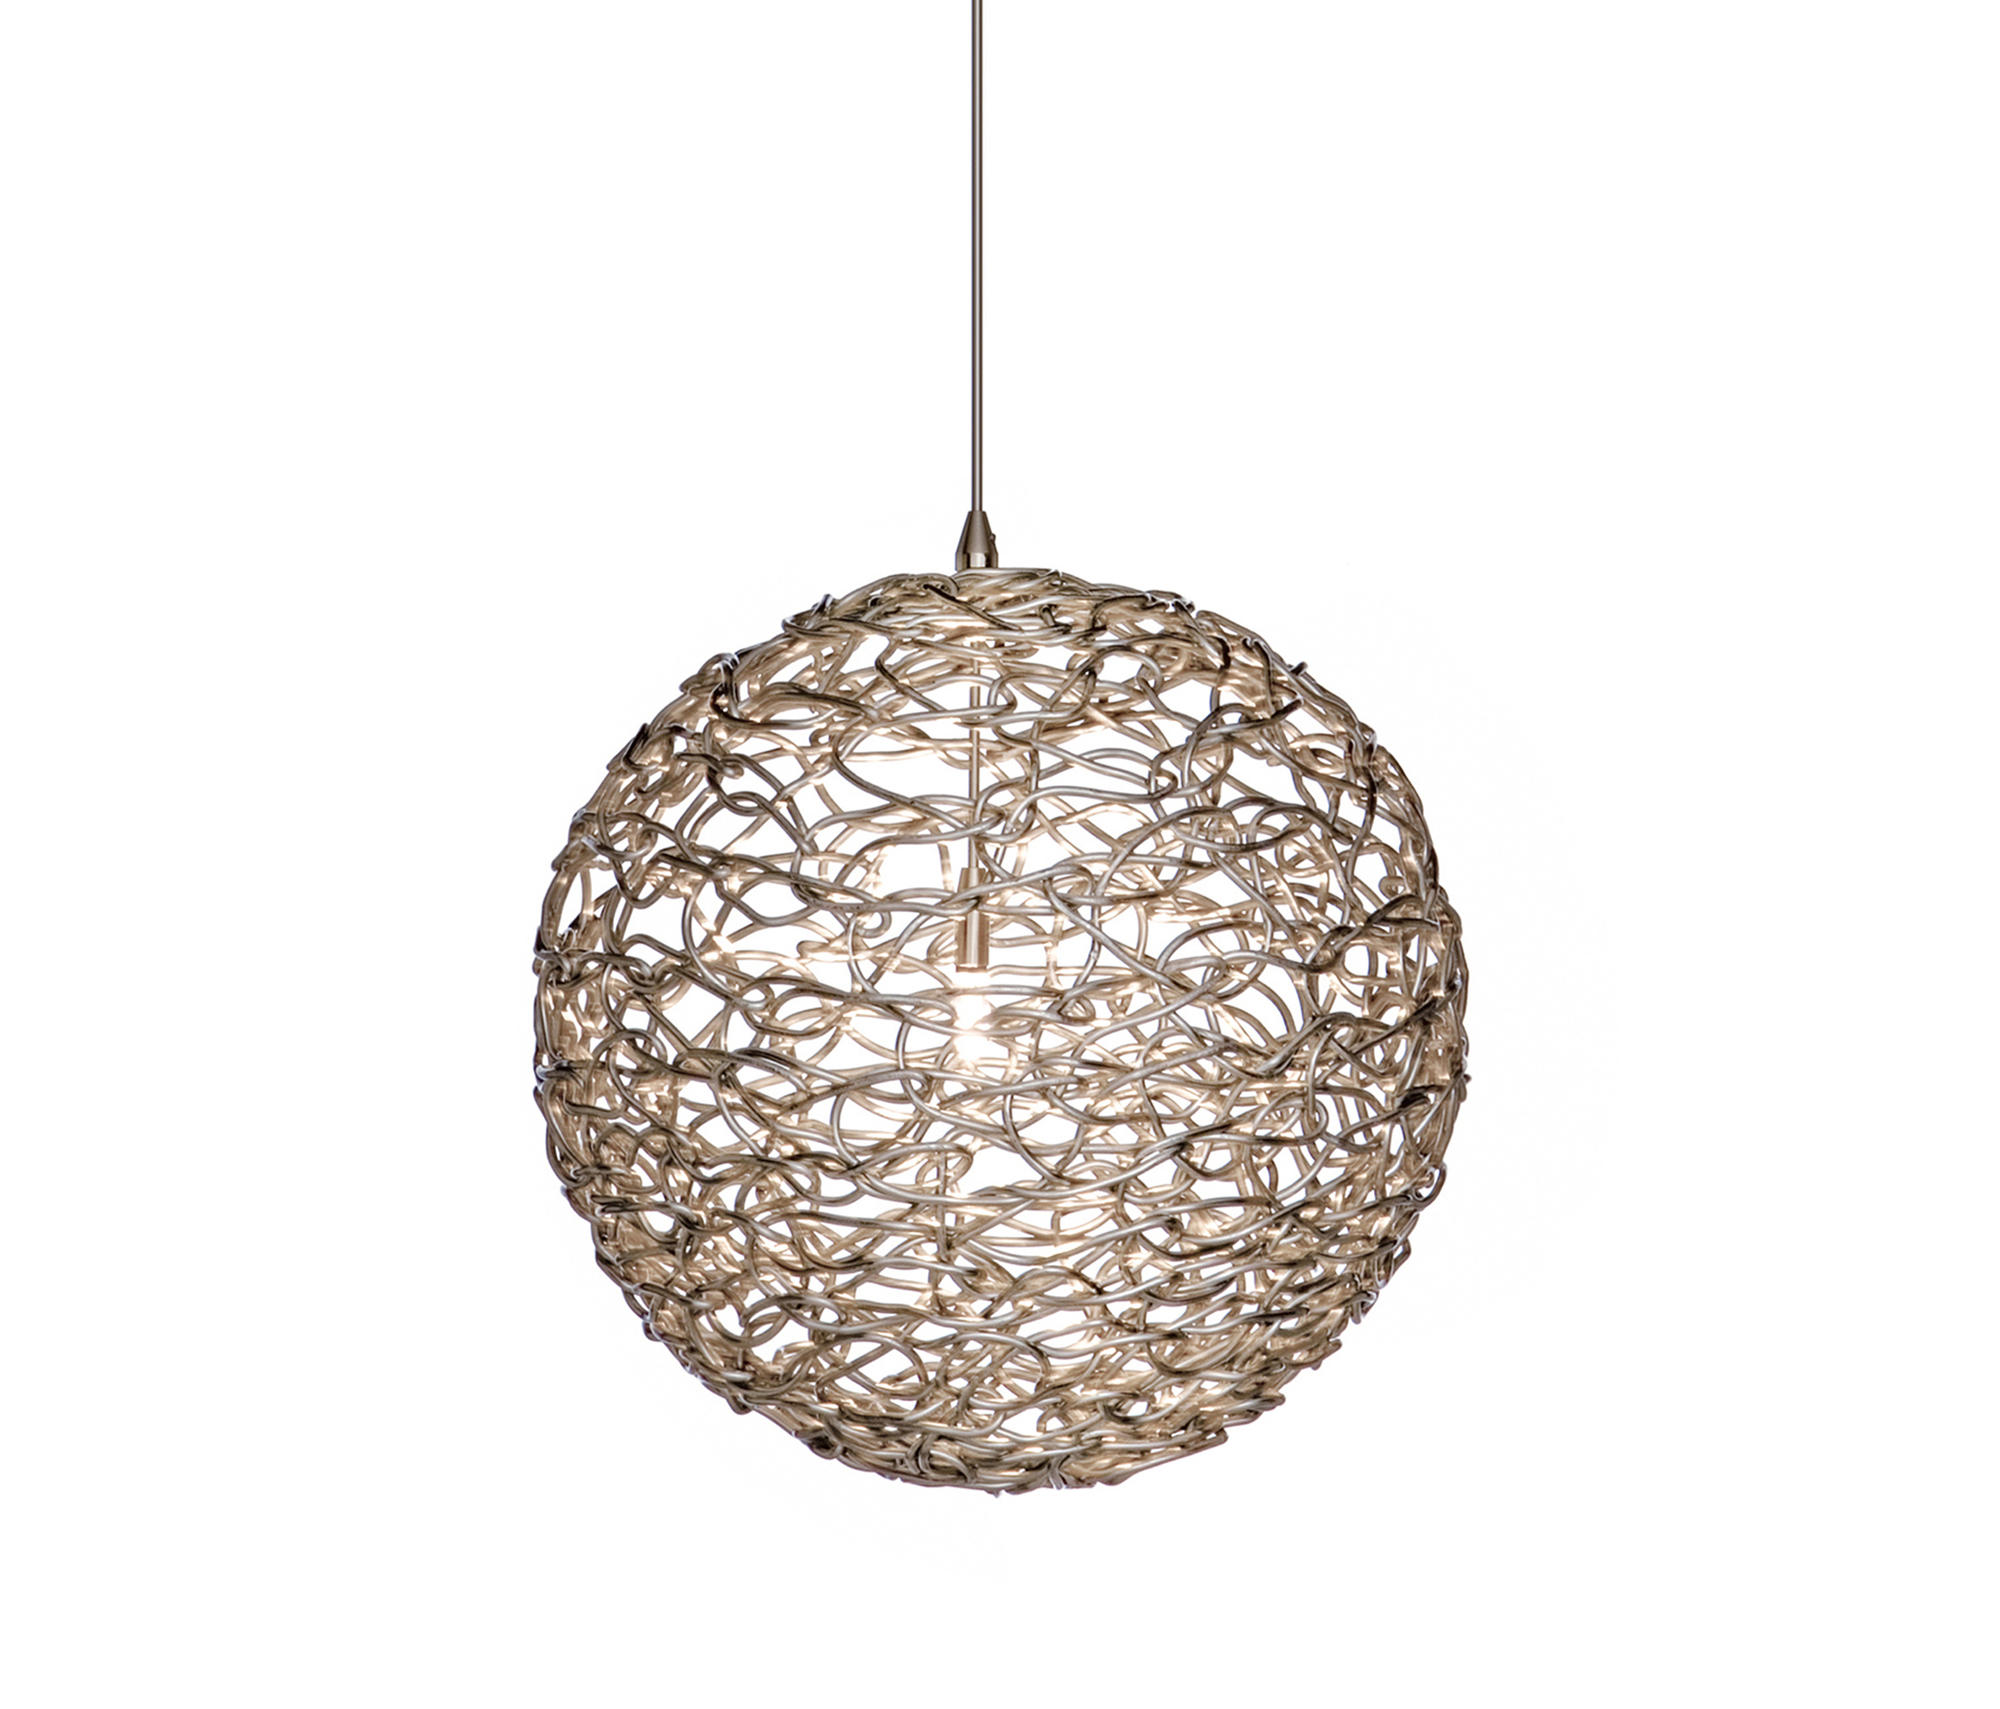 Ball pendant light 25 by HARCO LOOR | General lighting